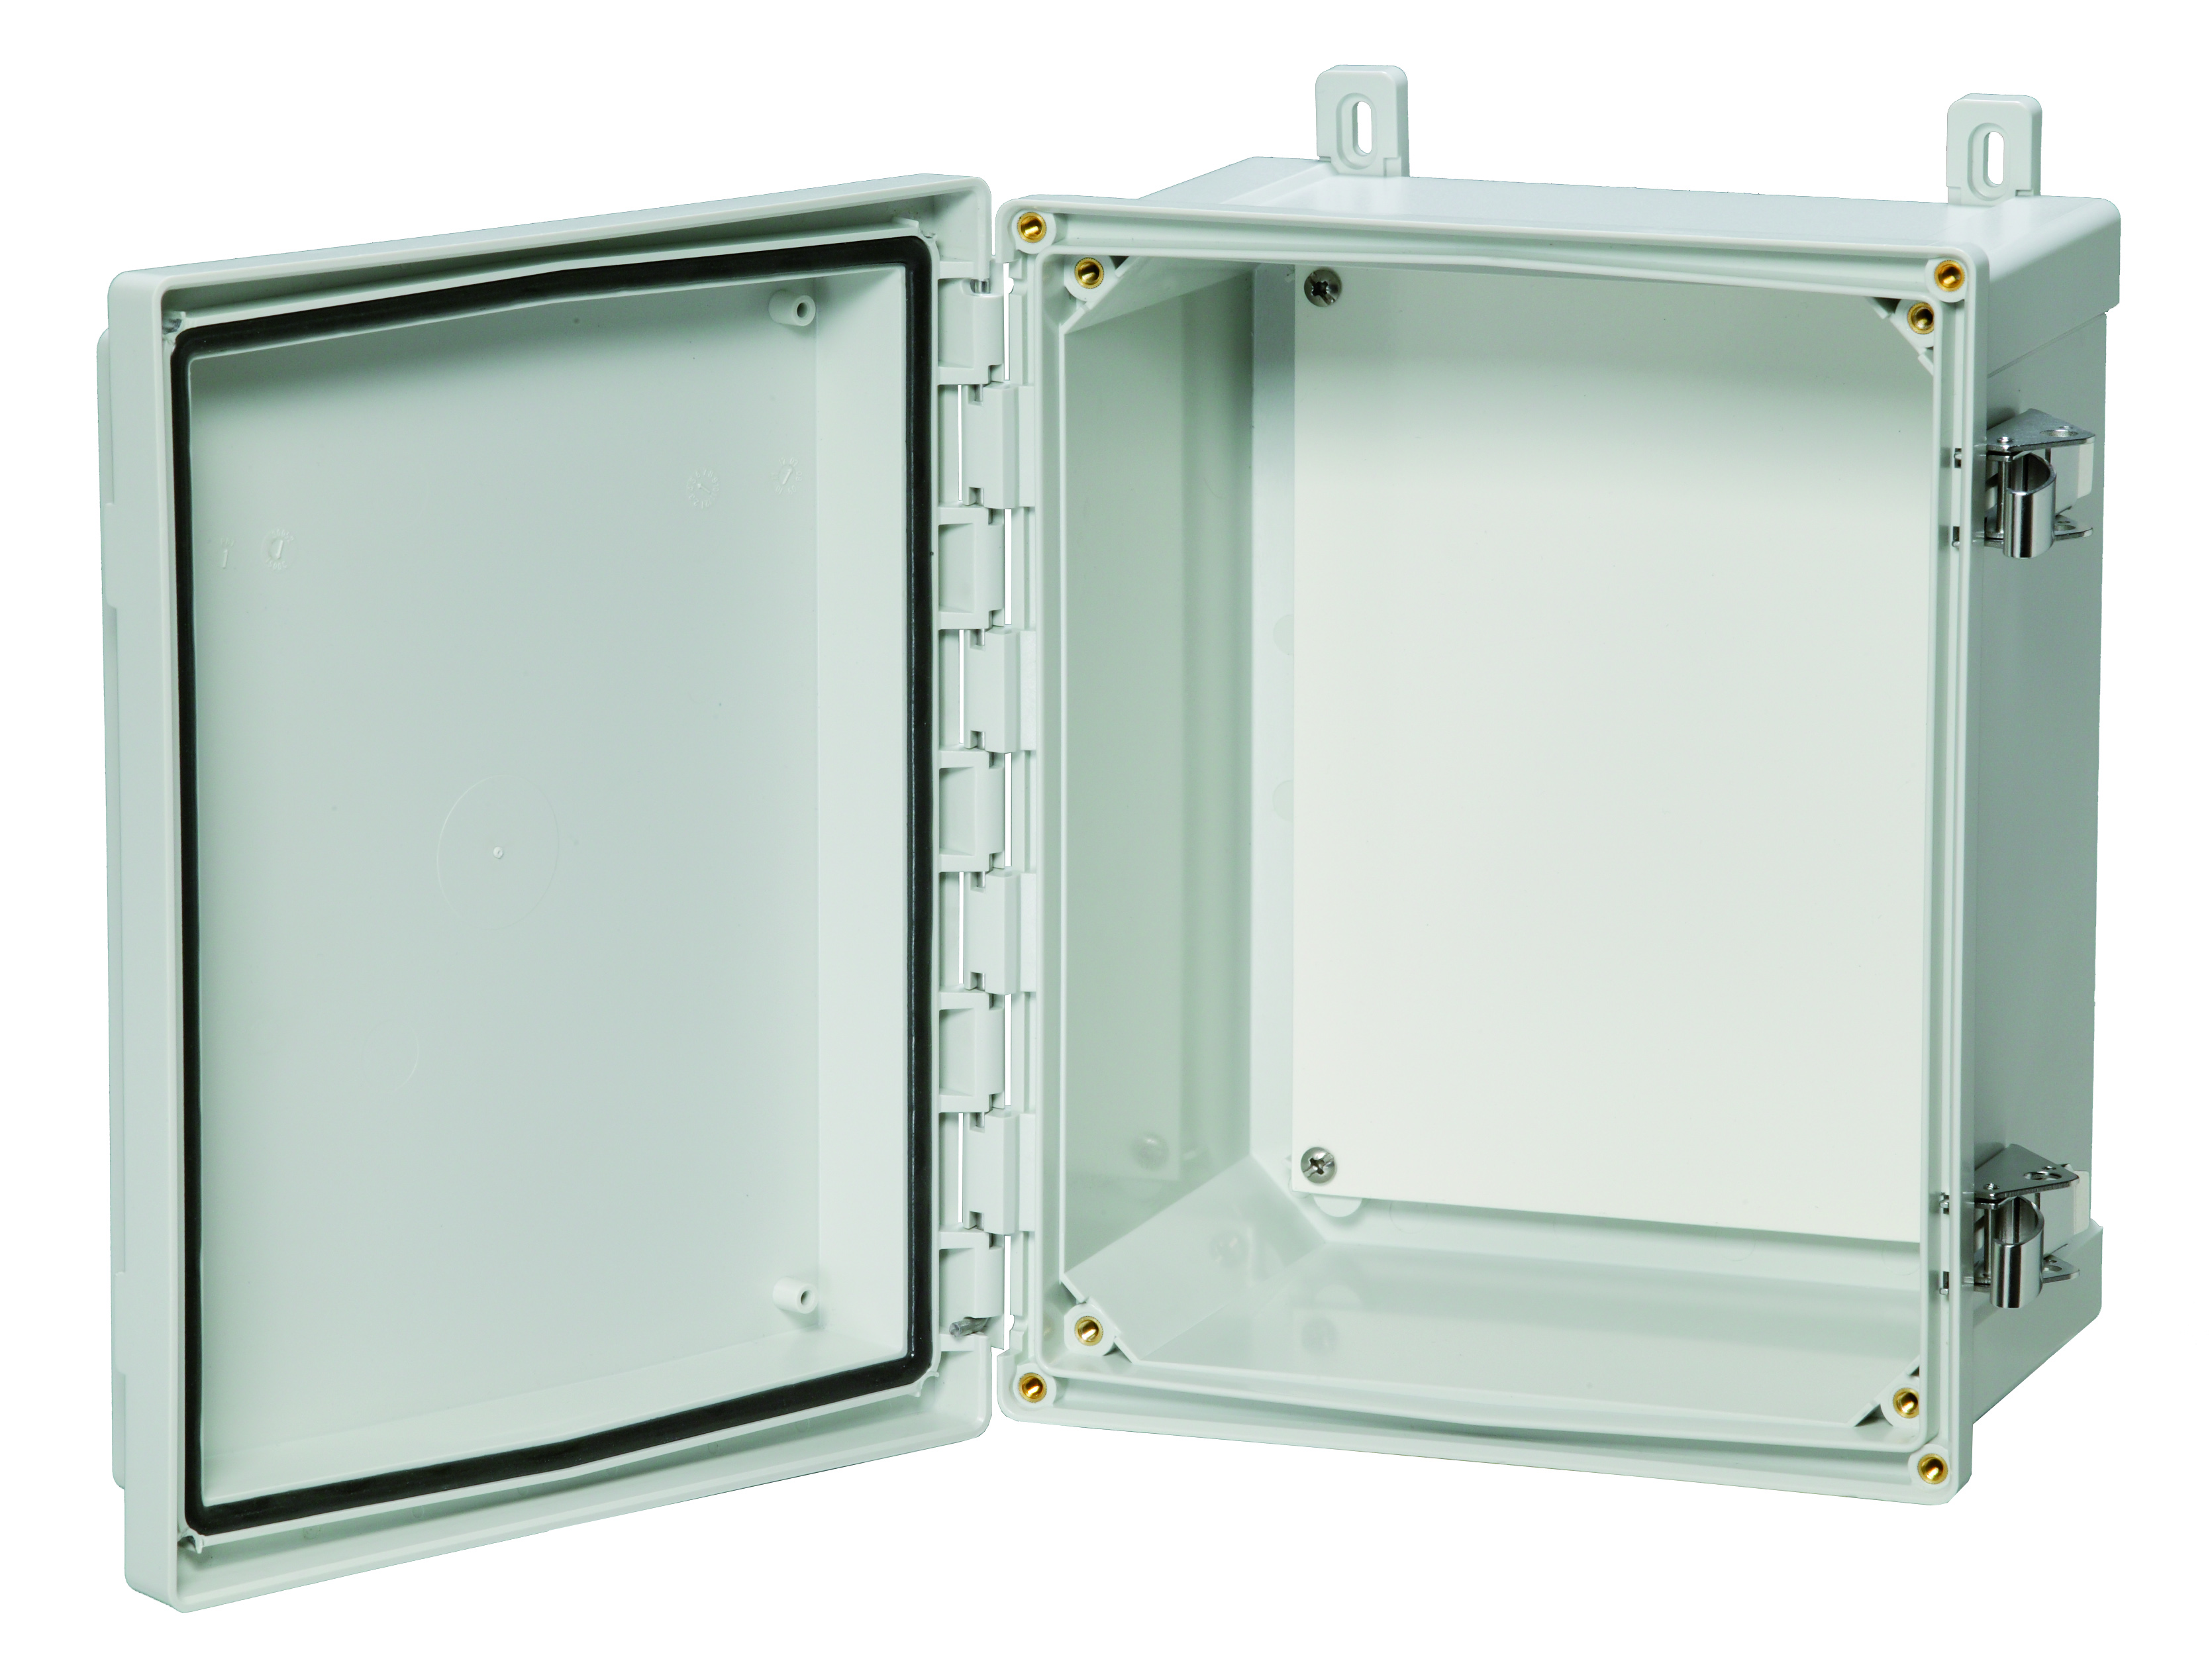 Hinged opaque covered enclosure